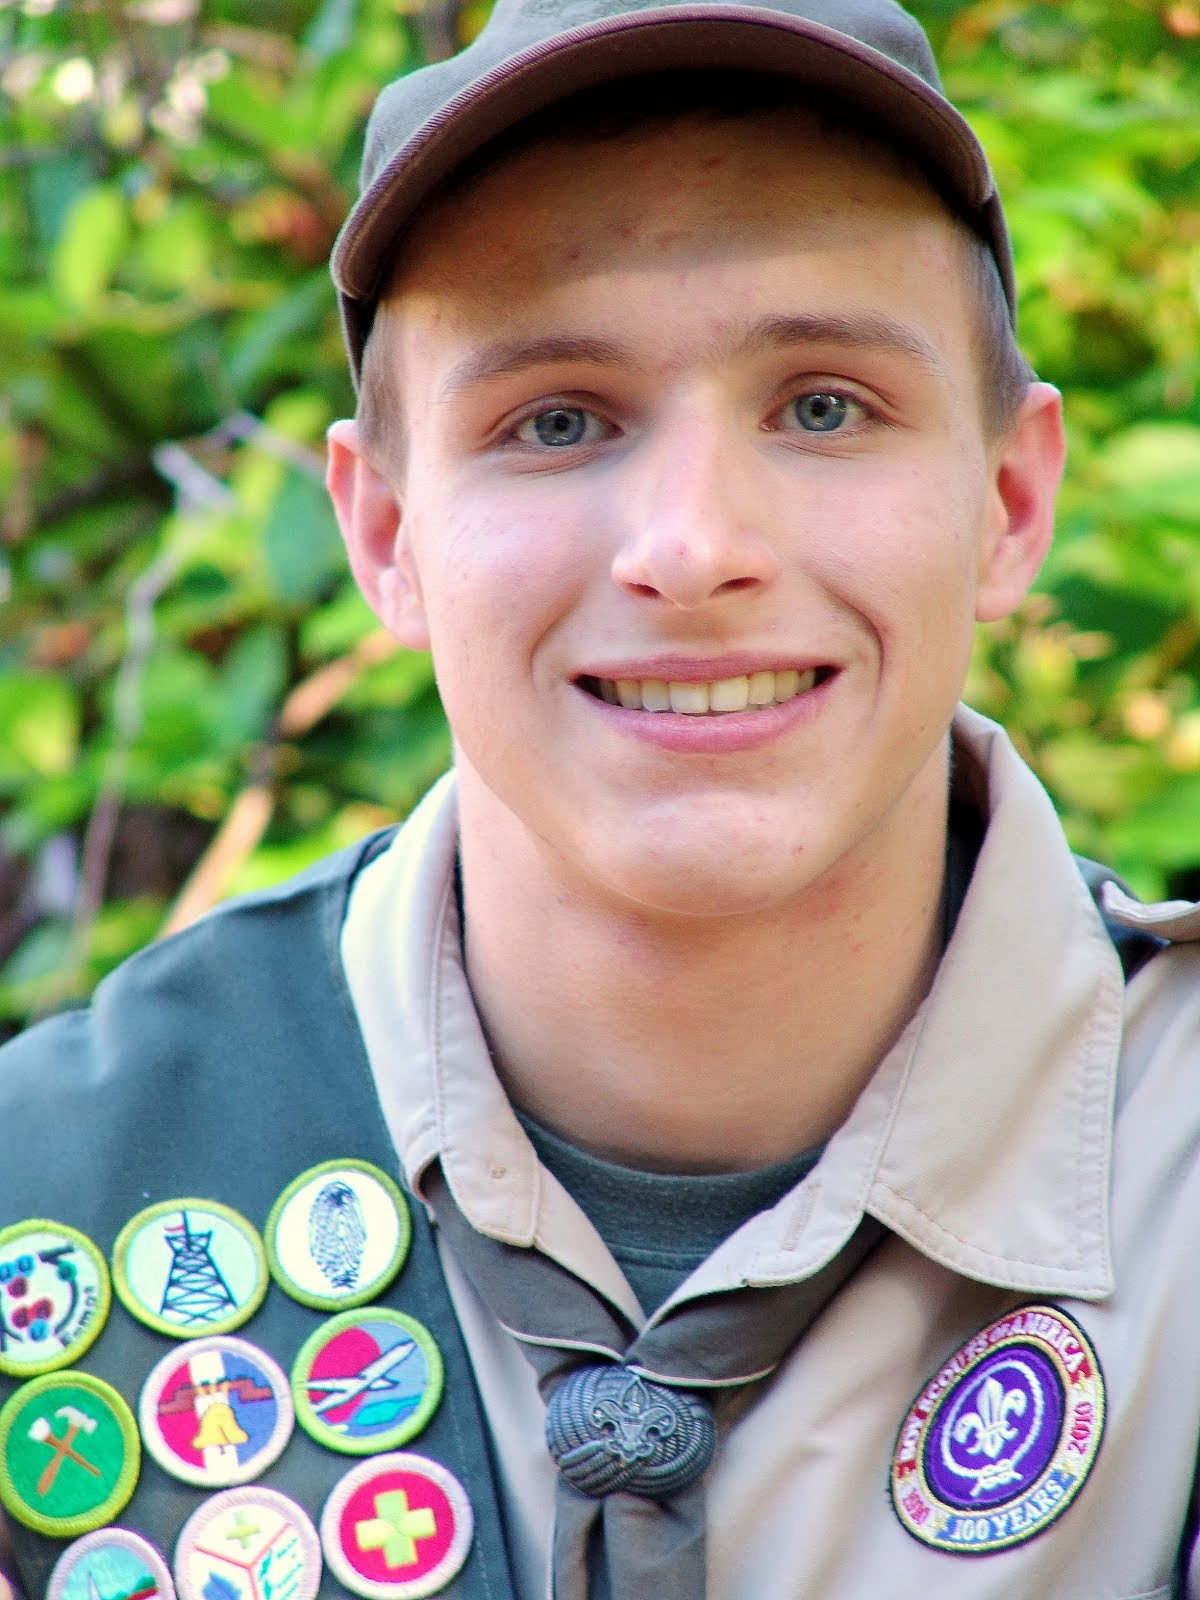 Cody's Eagle Scout Court of Honor